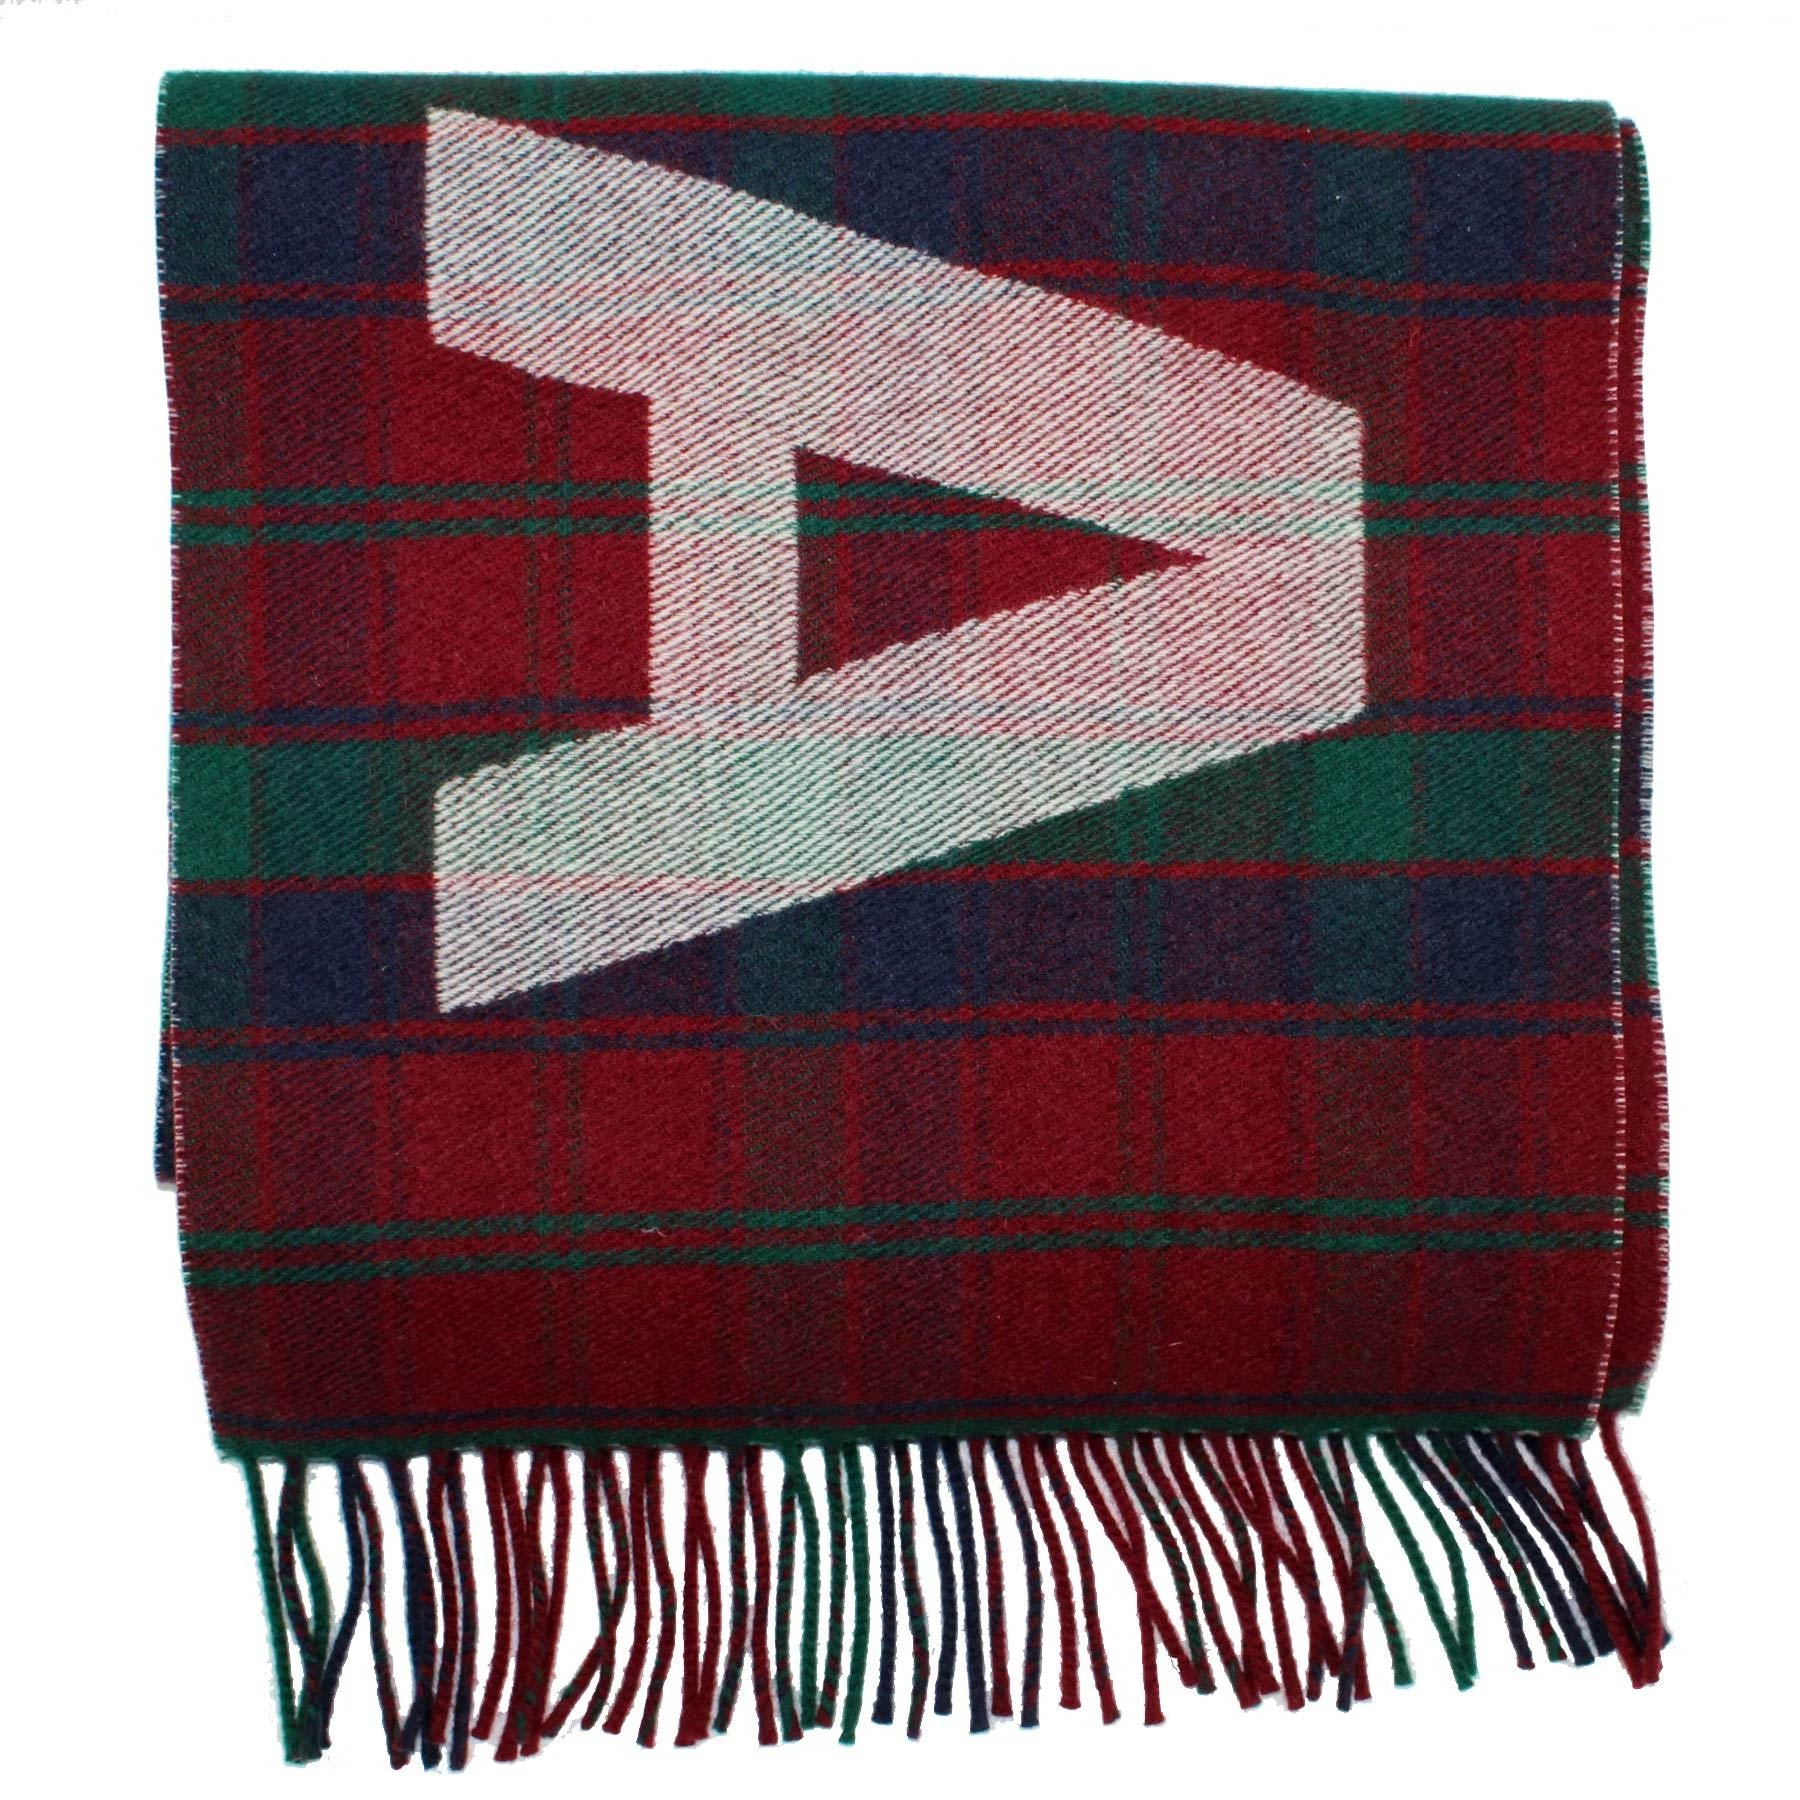 Balenciaga Scarf Burgundy Green Plaid Logo Wool Shawl SALE